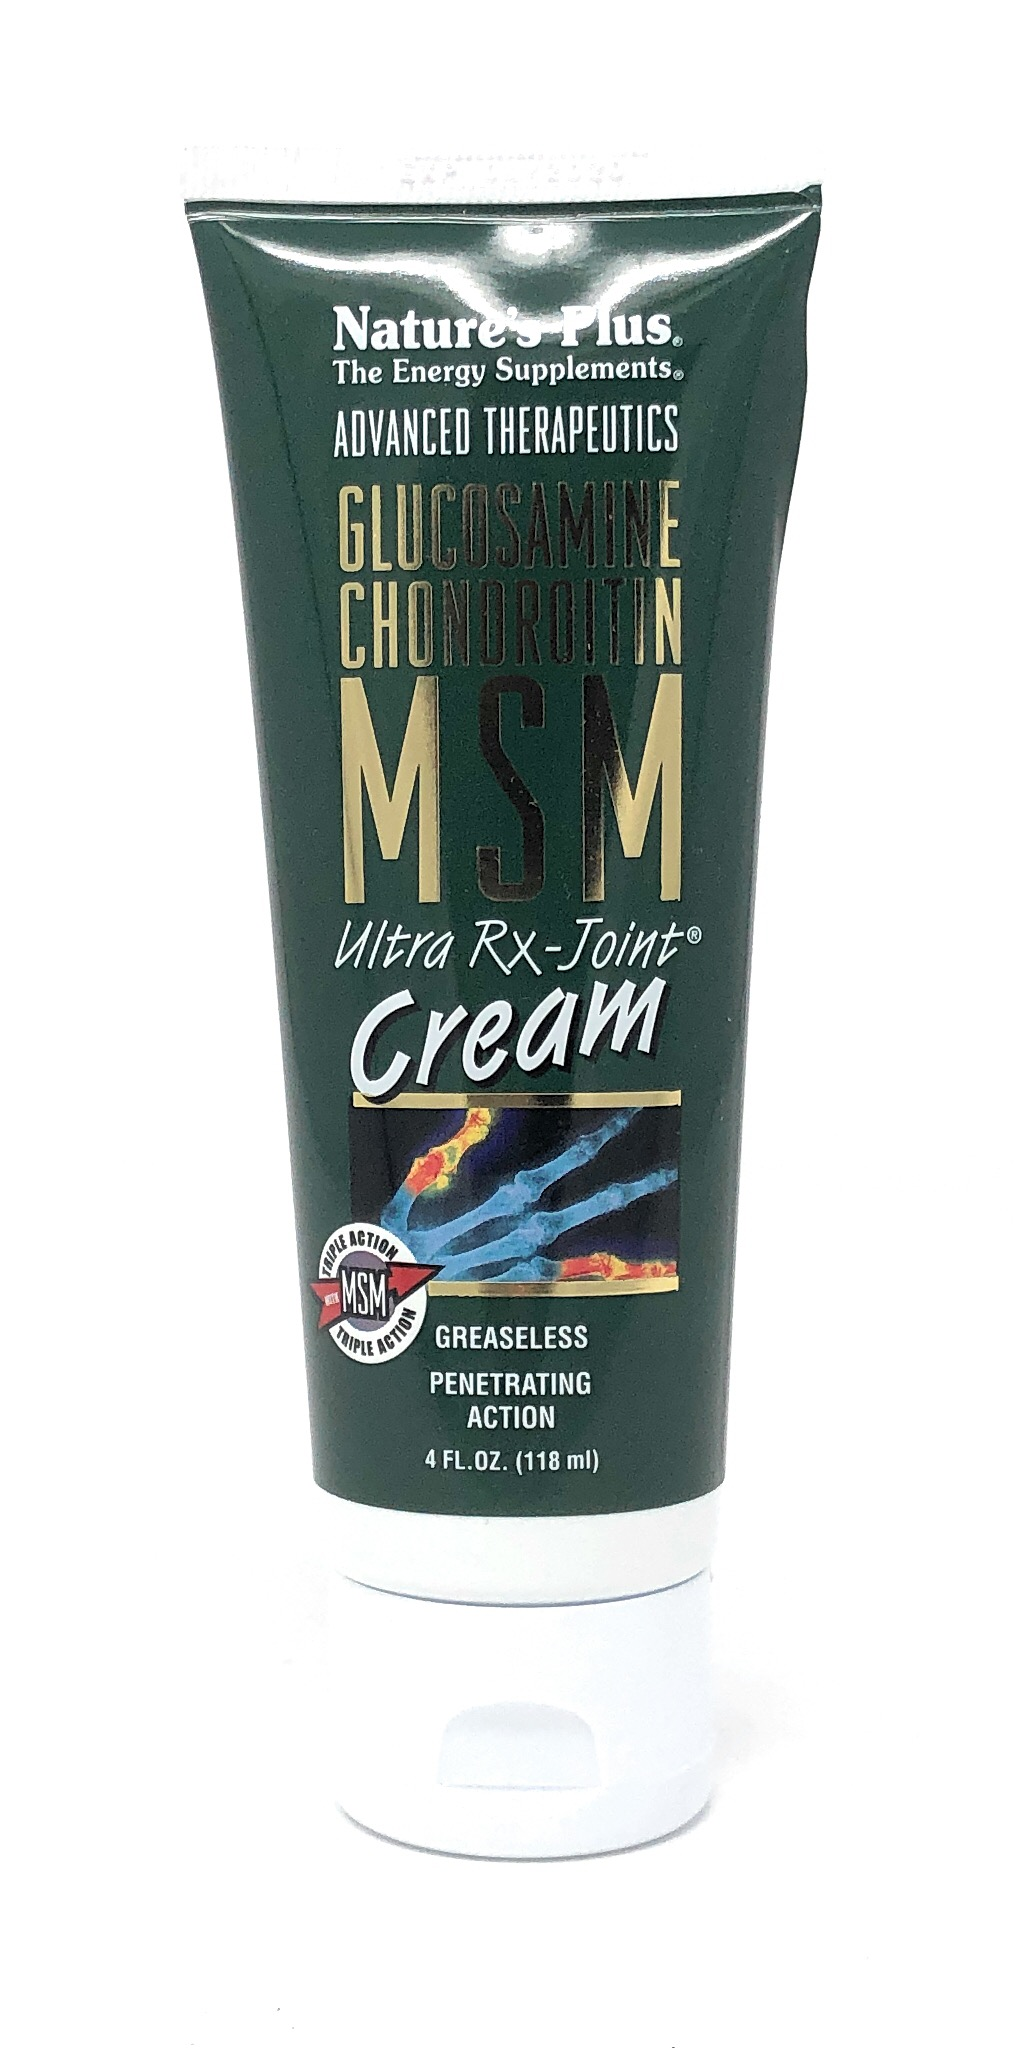 Natures PlusGlucosamine/Chondroitin/MSM Ultra Rx-Joint® Cream 118 ml Tube